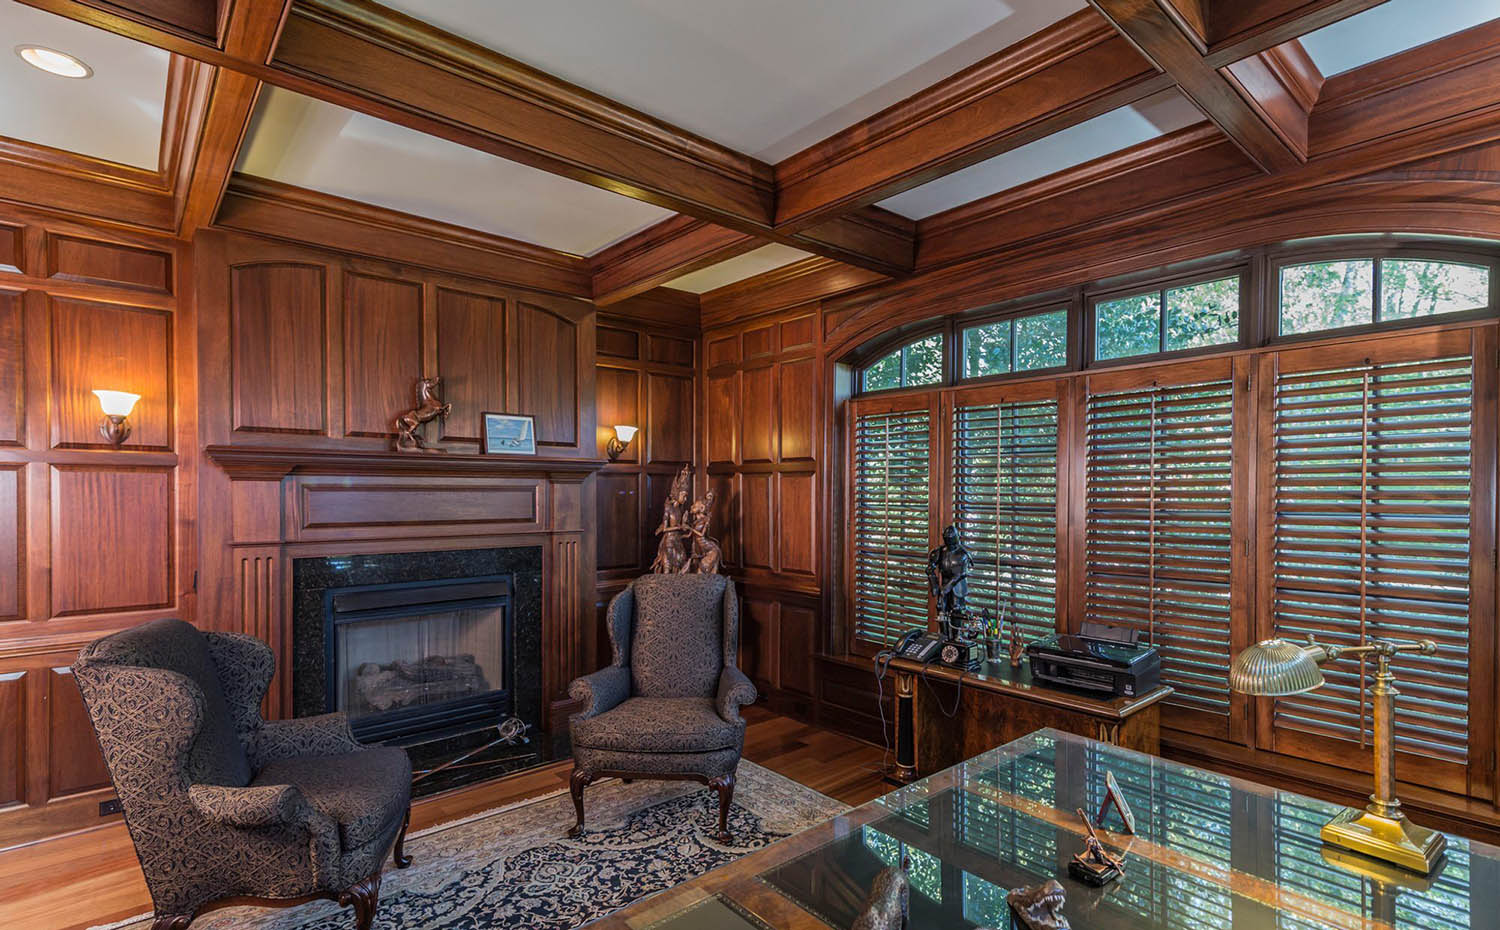 Wood walls with matching coffered ceiling. Gas fireplace with black granite surround. Hardwood floors and area rug and glass desk.